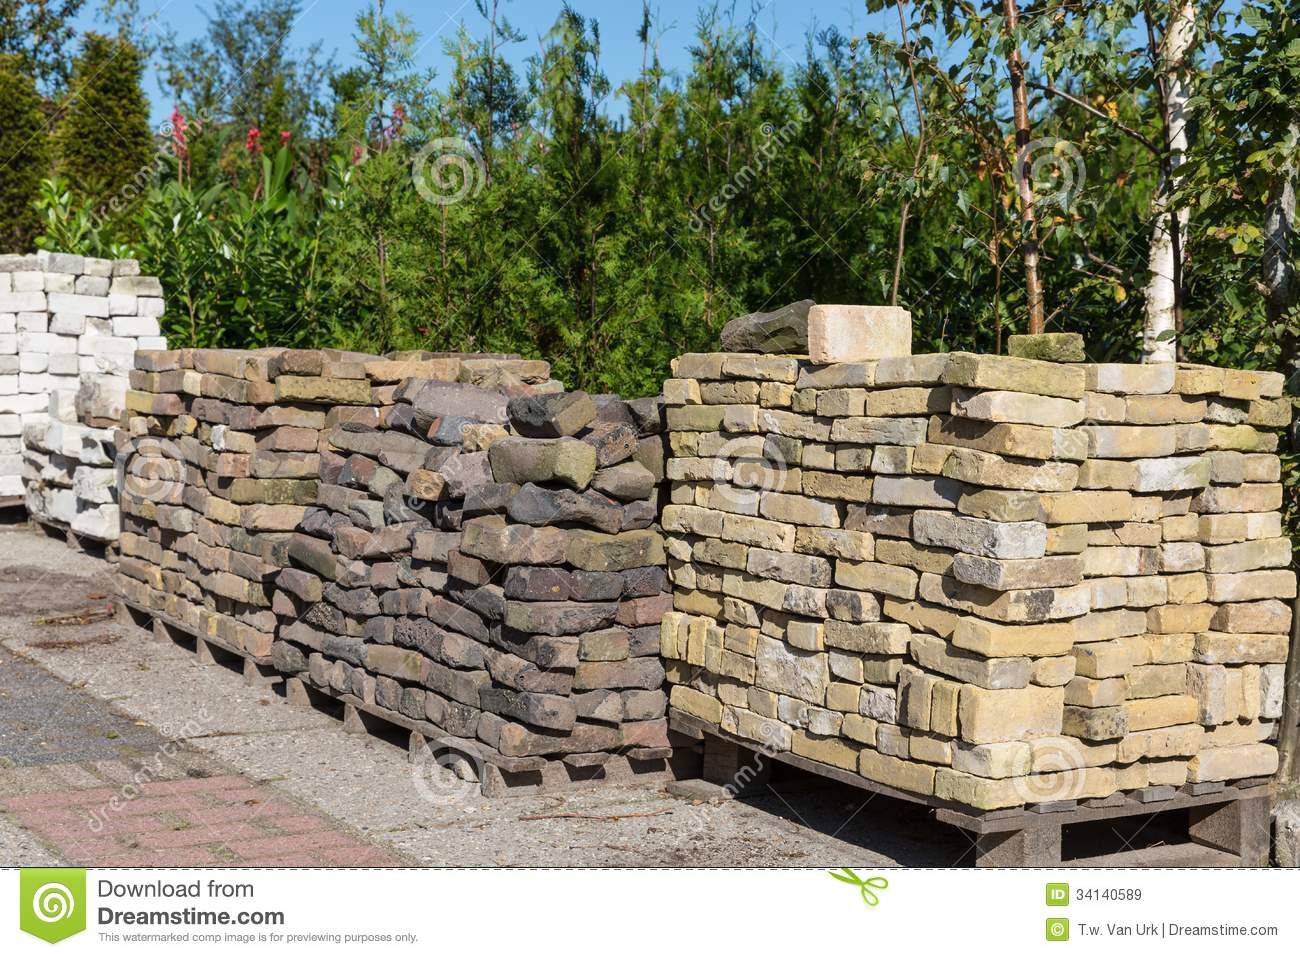 Piles of colorful ornamental stones for sale in a garden centre - Piles Of Ornamental Stones For Sale In A Garden Centre Stock Image